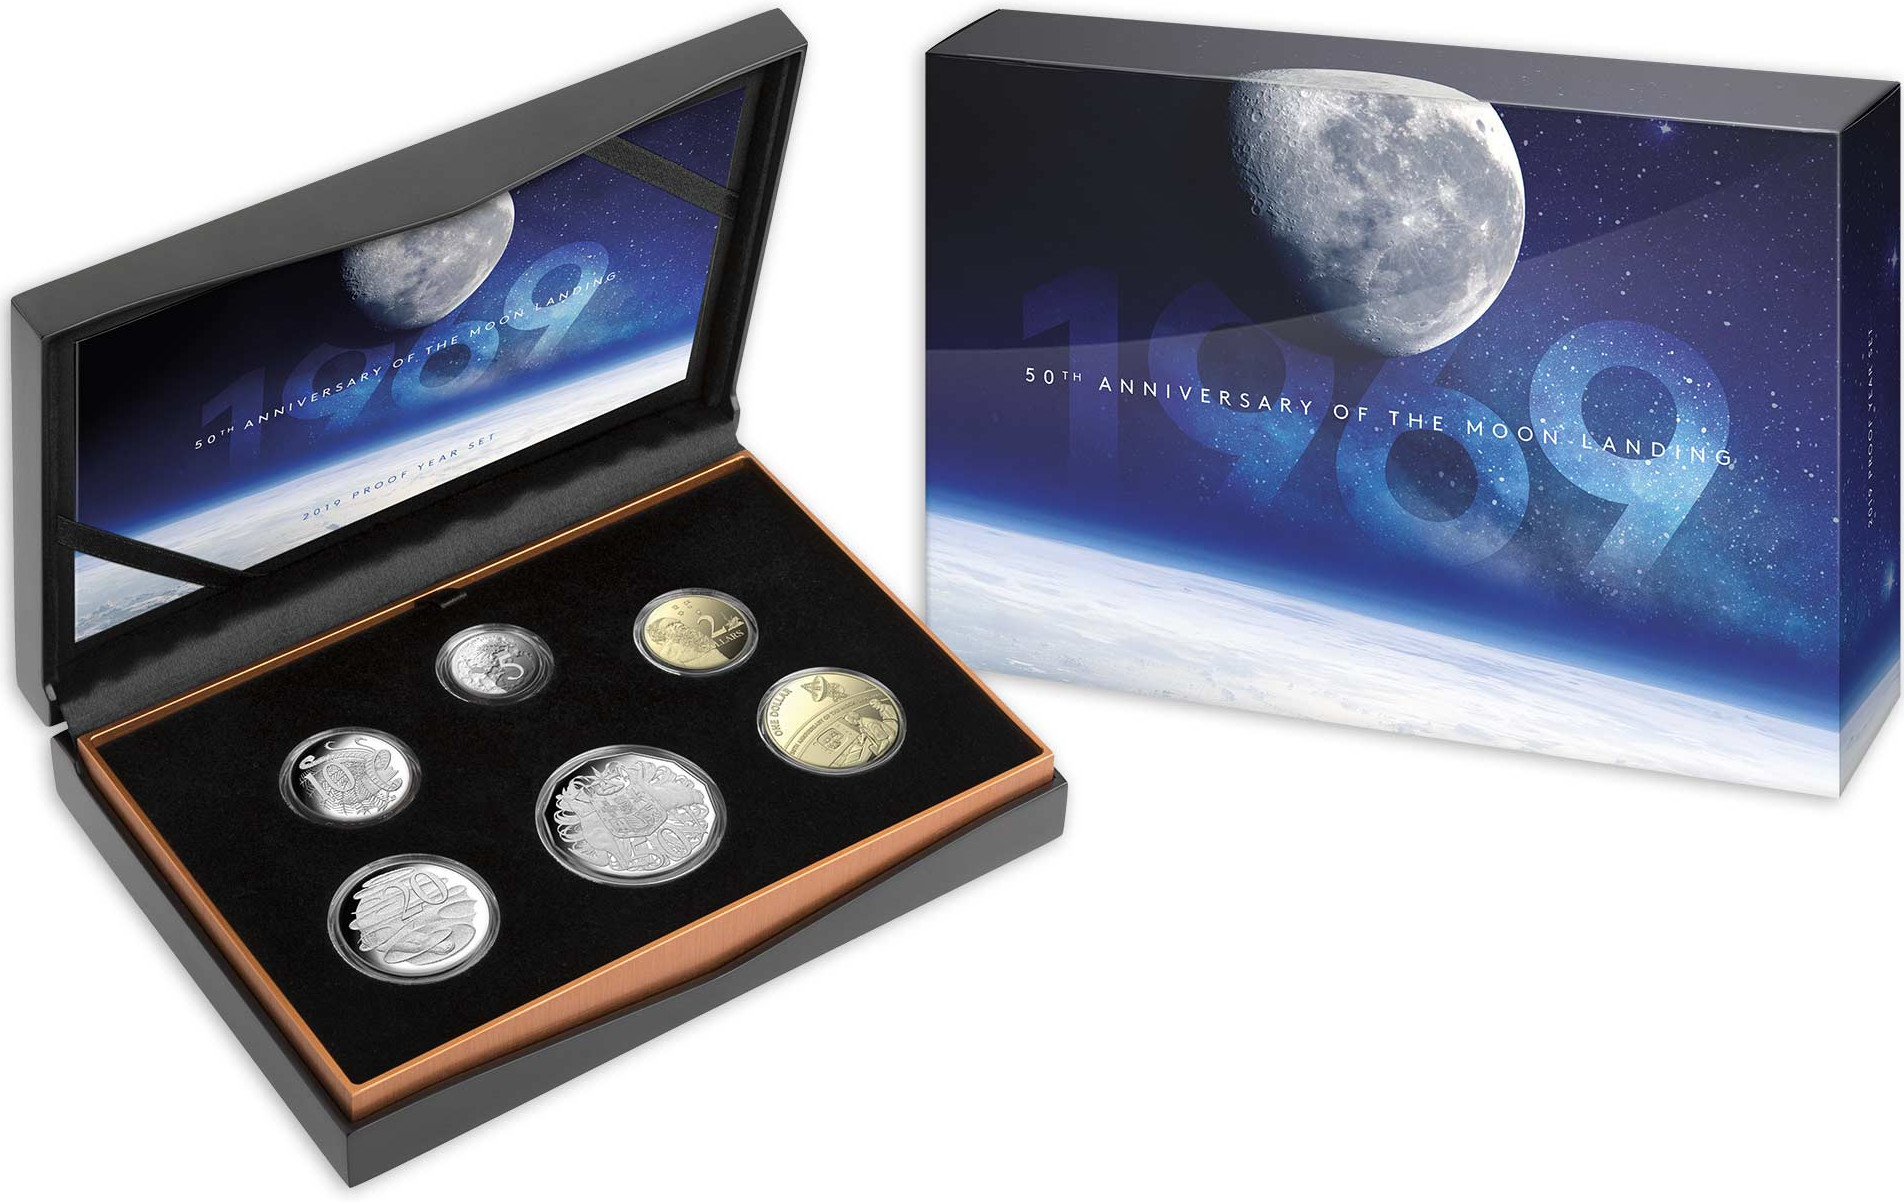 Five Cents 2019 Moon Landing (NCLT): Photo 50th Anniversary of the Moon Landing